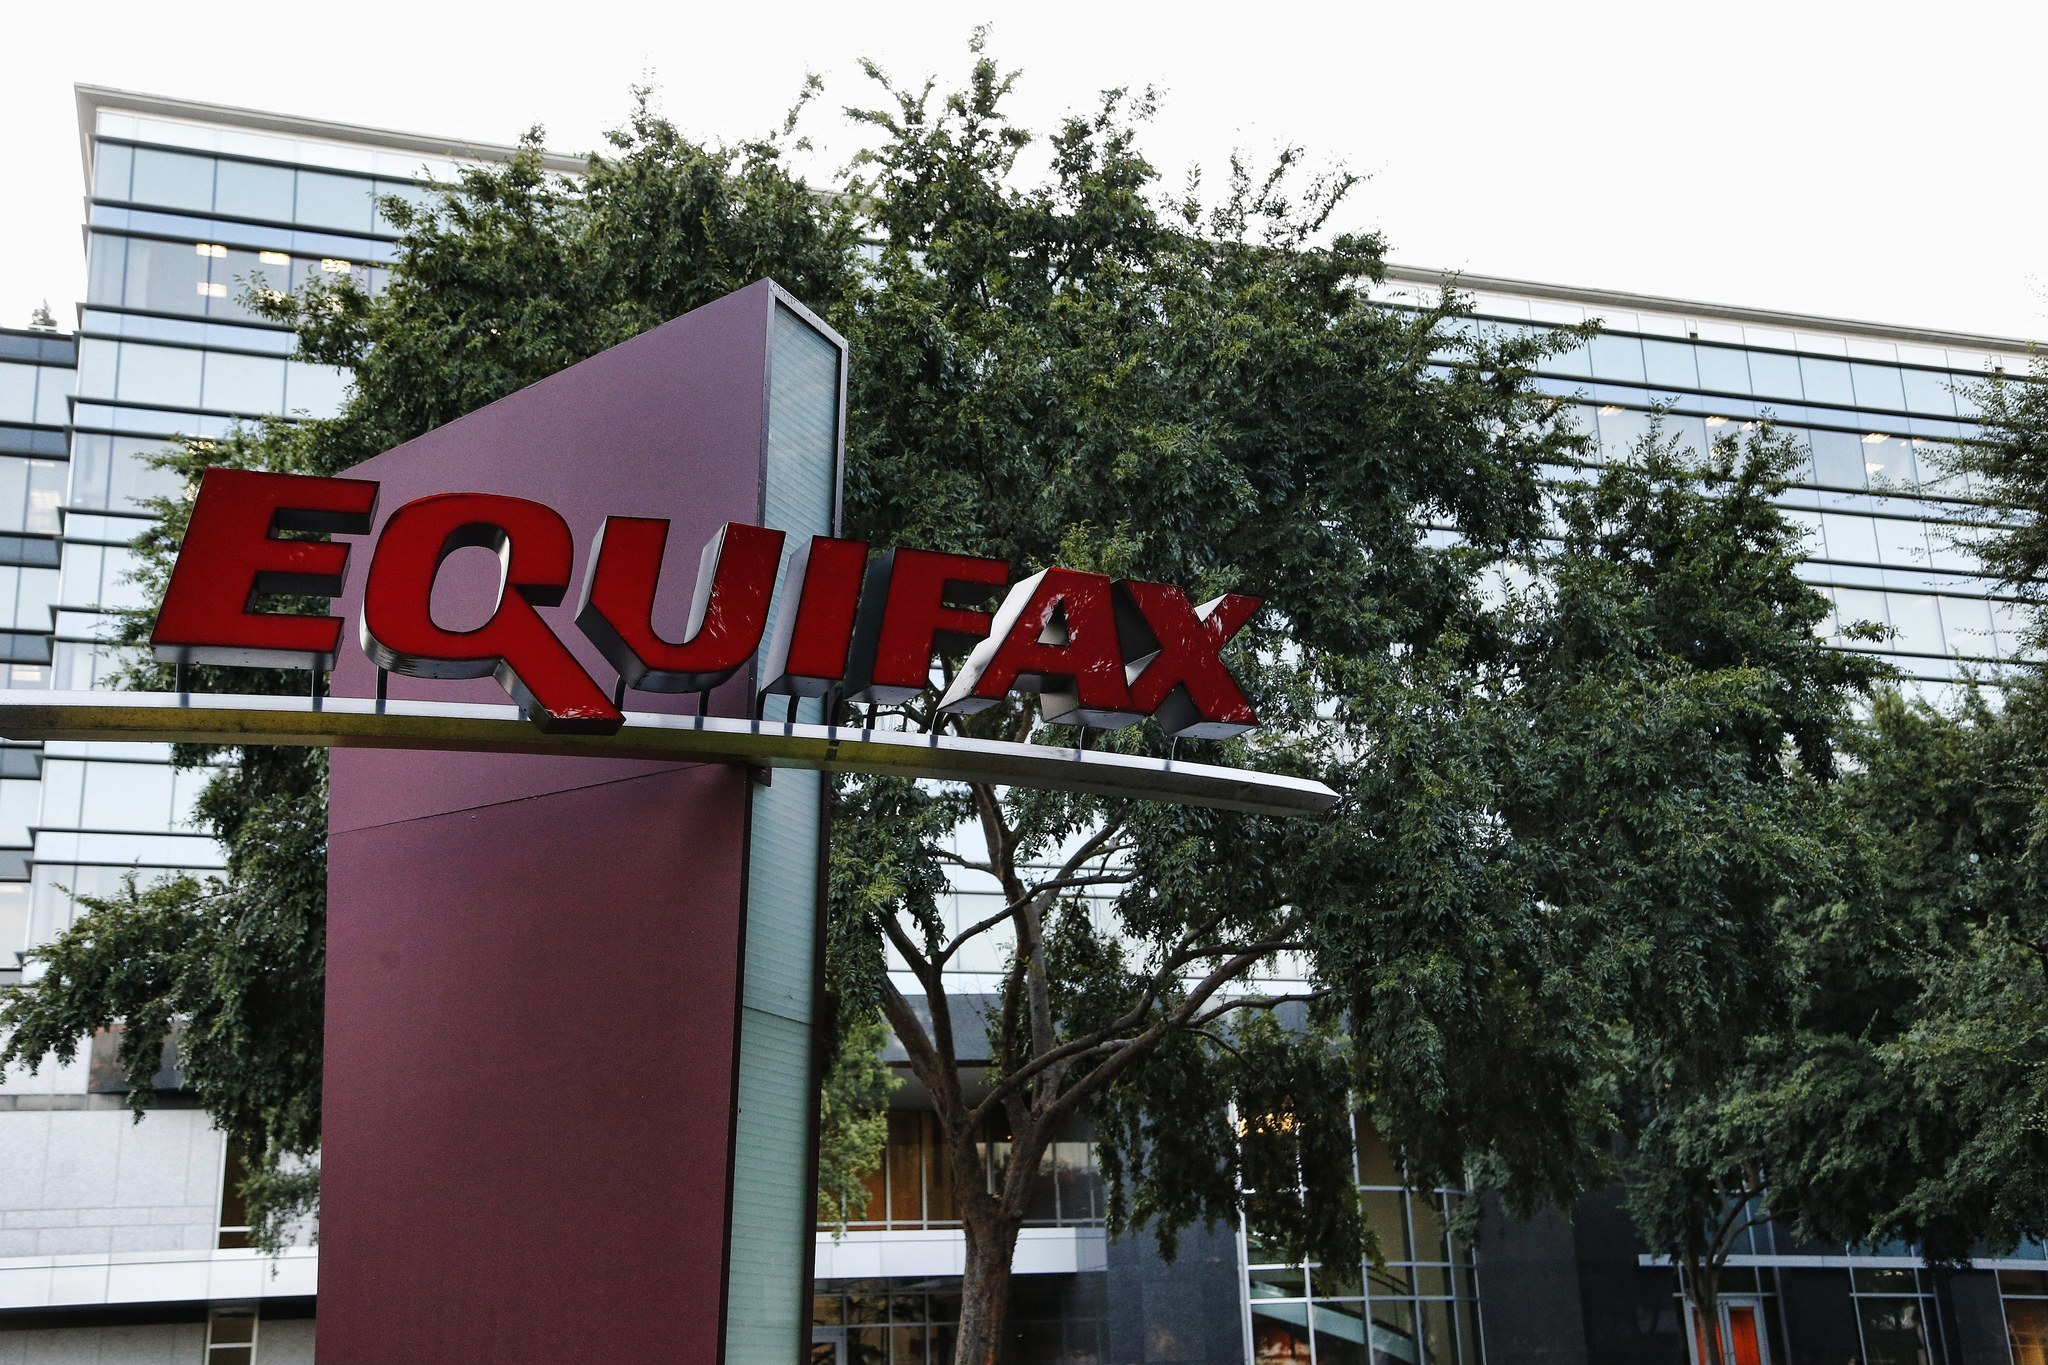 ct-equifax-consumer-protection.jpg